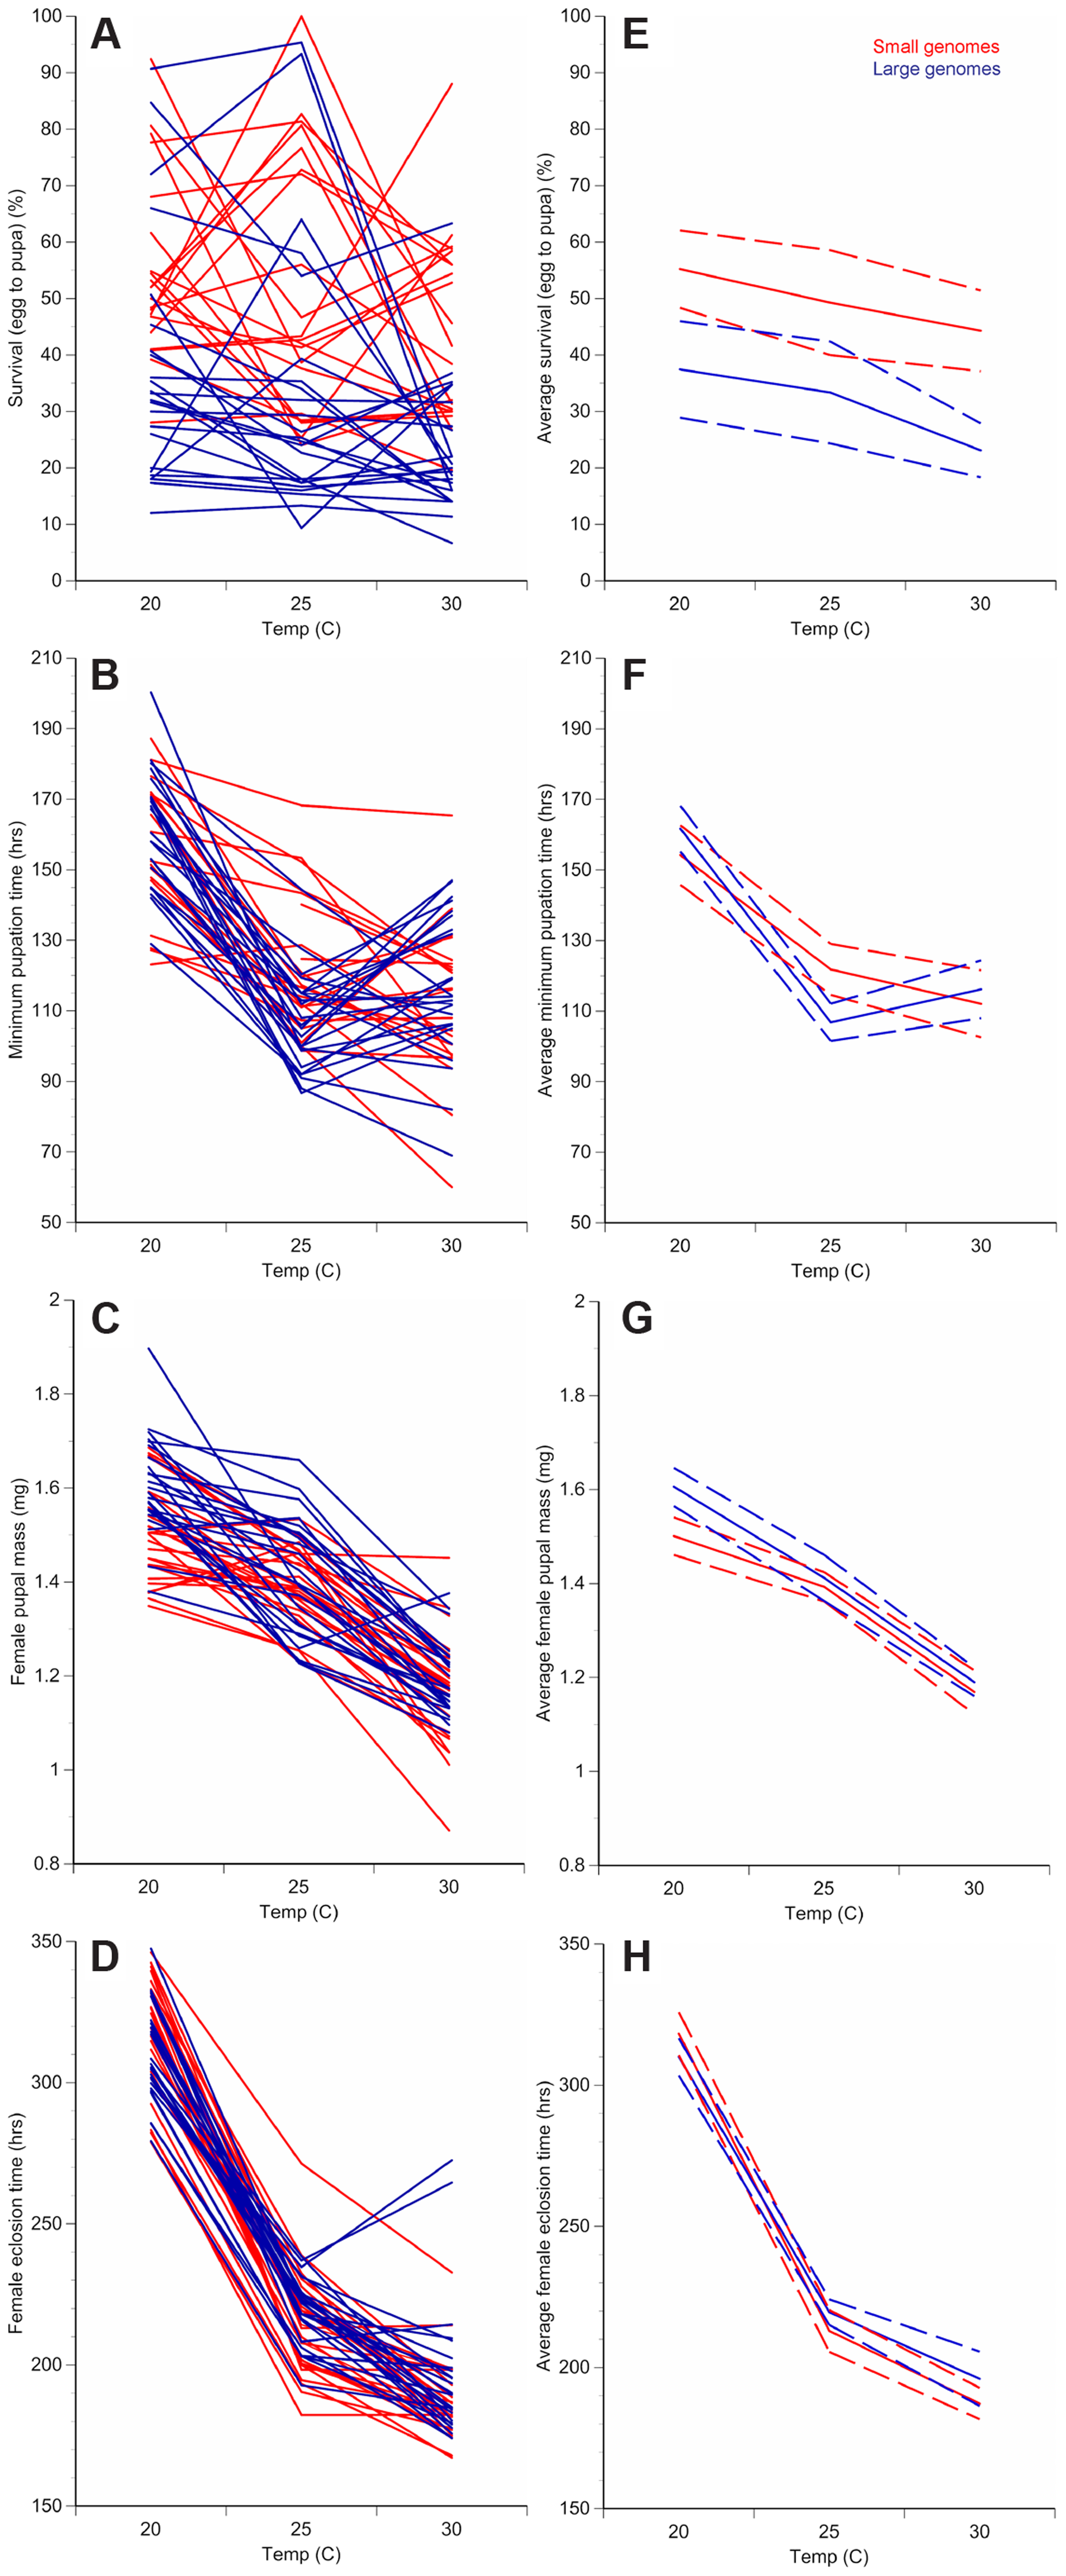 Changes in temperature alter development of <i>D. melanogaster</i> with small or large genomes.